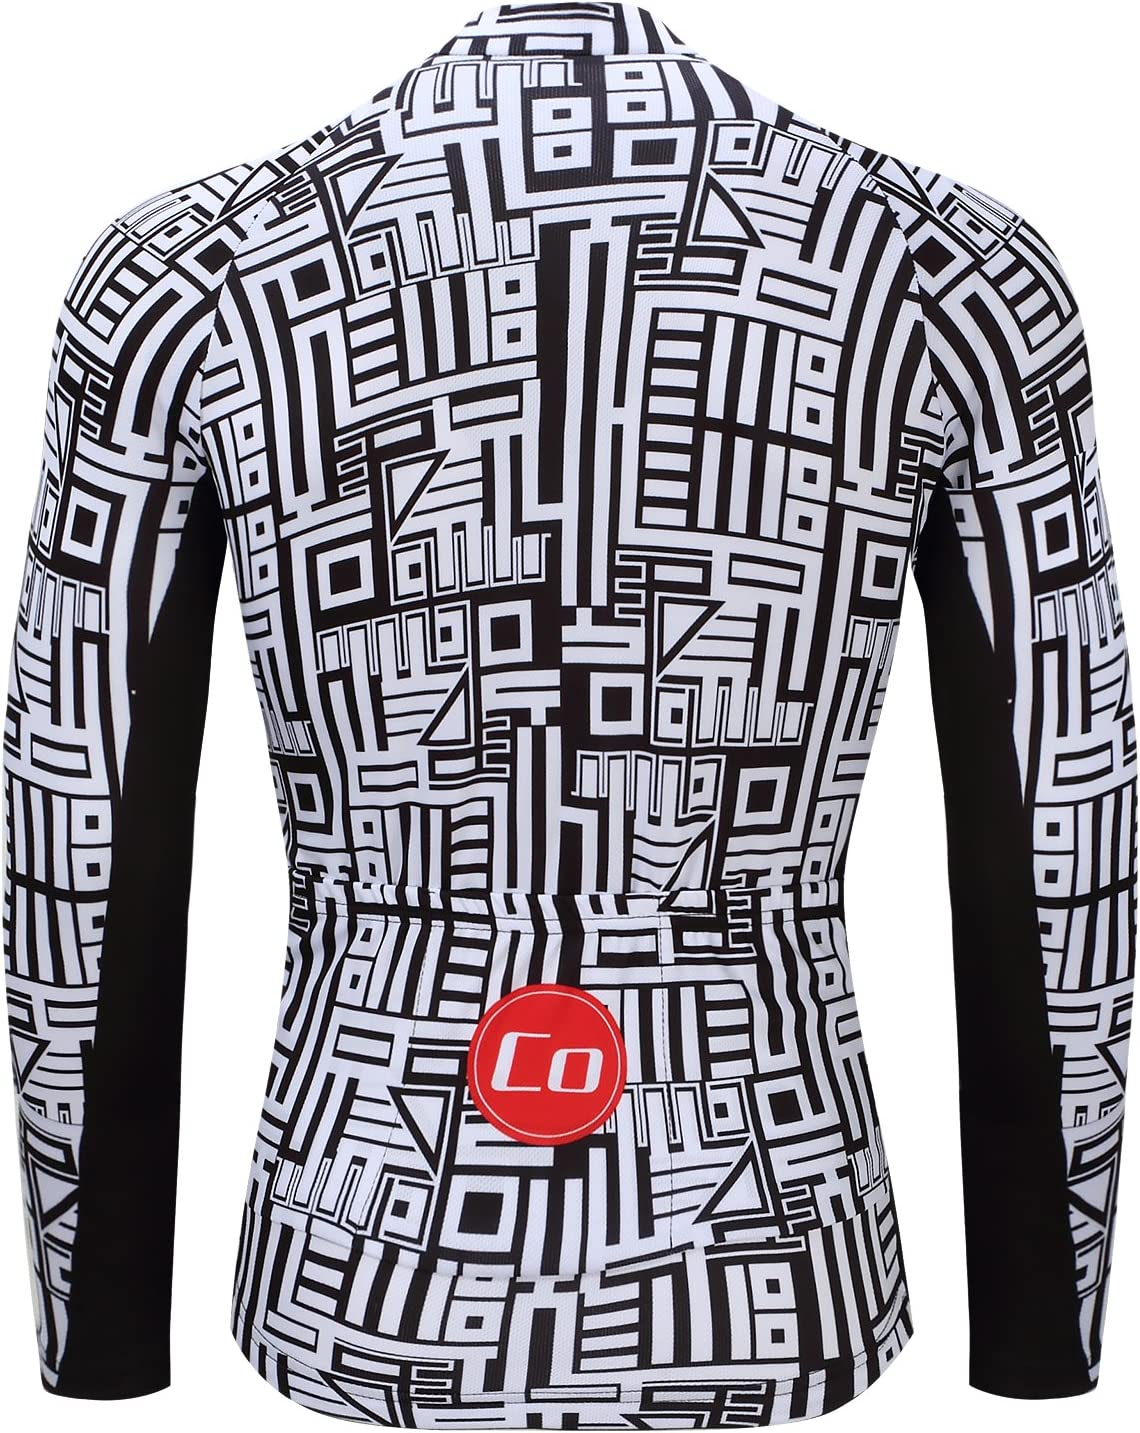 Coconut Ropamo Mens Long Sleeve Cycling Jersey Road Bike Shirt Bicycle Clothes Breathable and Quick Dry Cycle Tops MTB Shirt